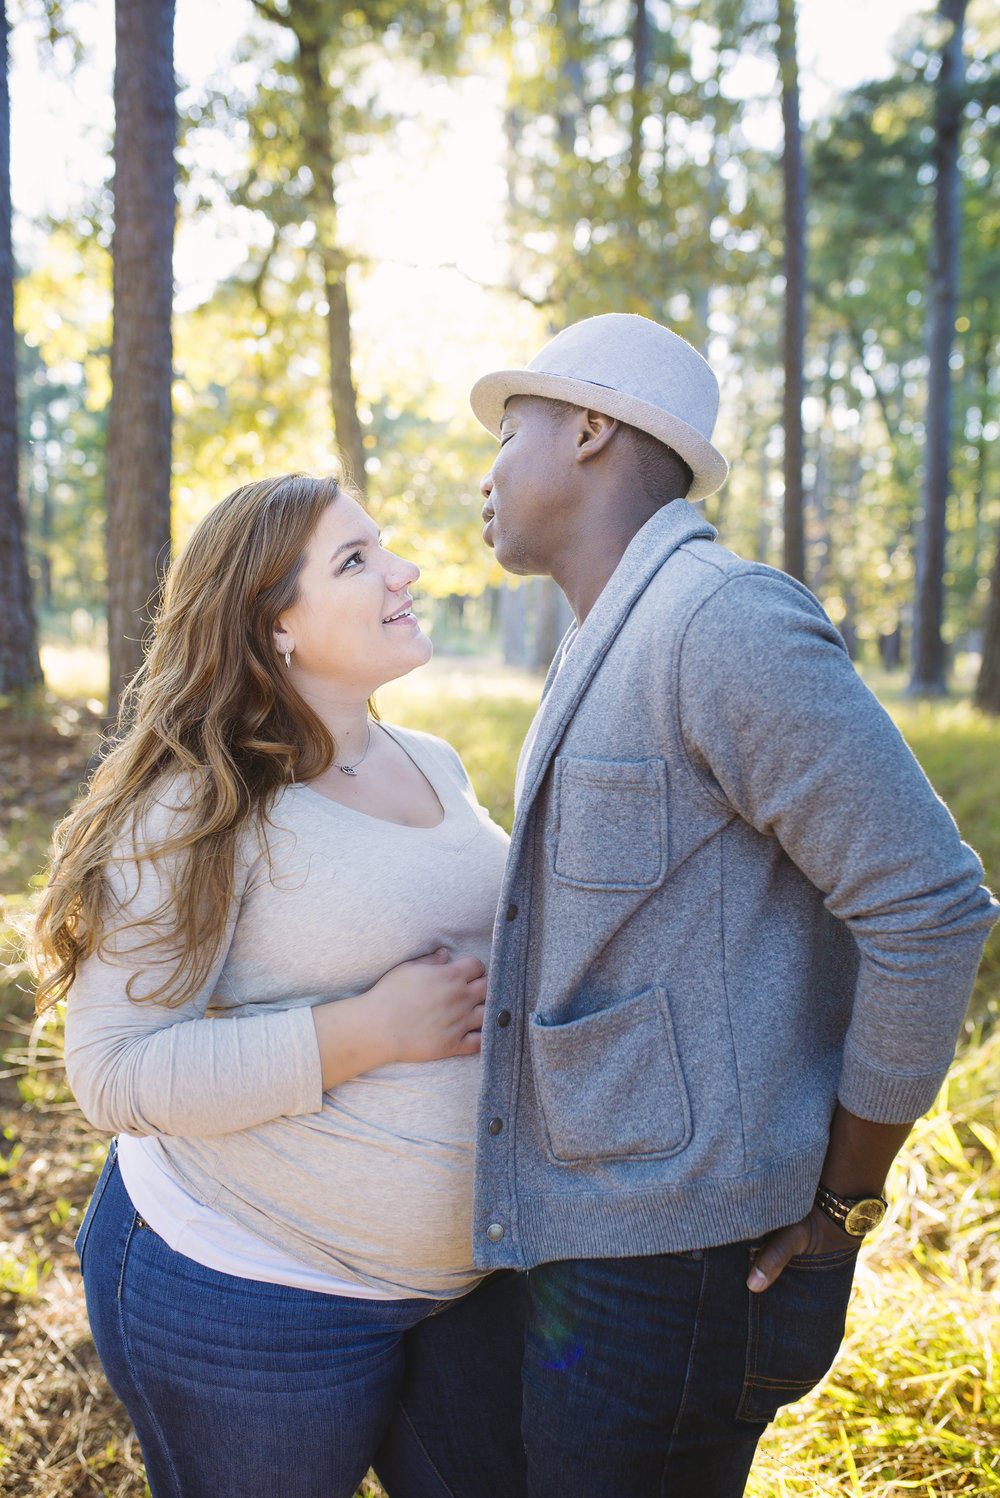 LT Images Maternity Photographer Victoria Pierre (61 of 61).jpg